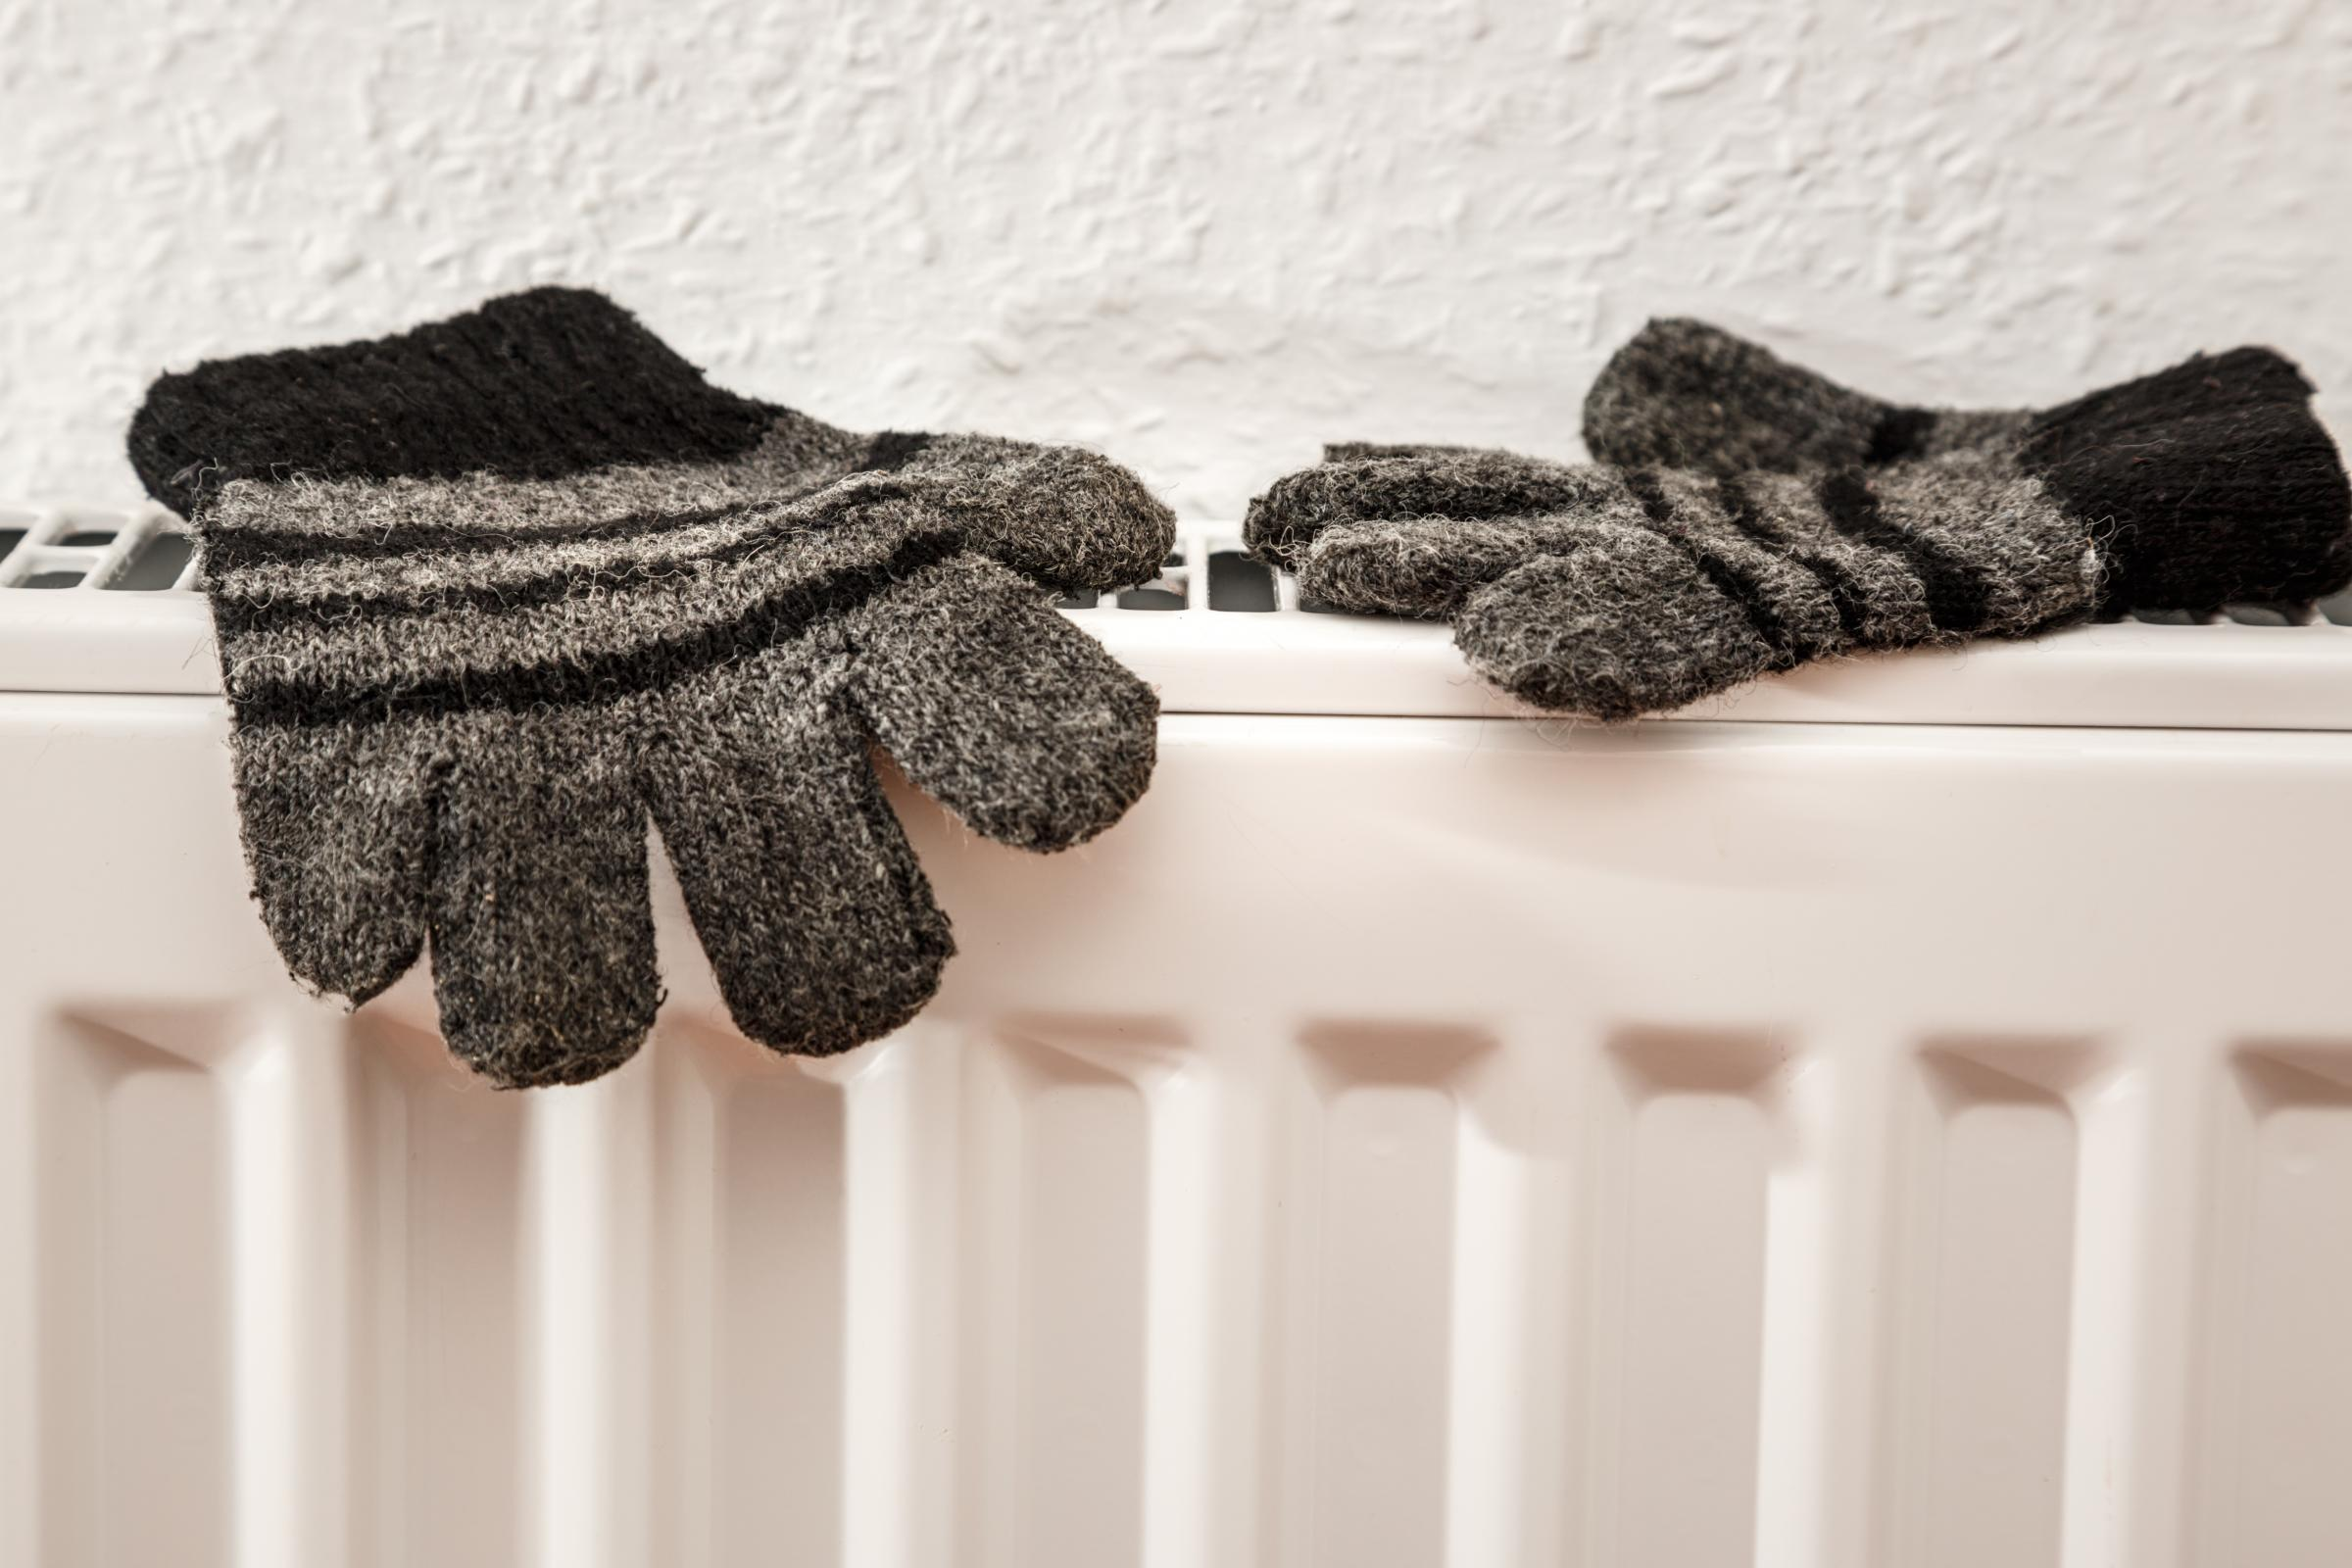 Heating grants ensure one thousand households across the region will become `warm and well'